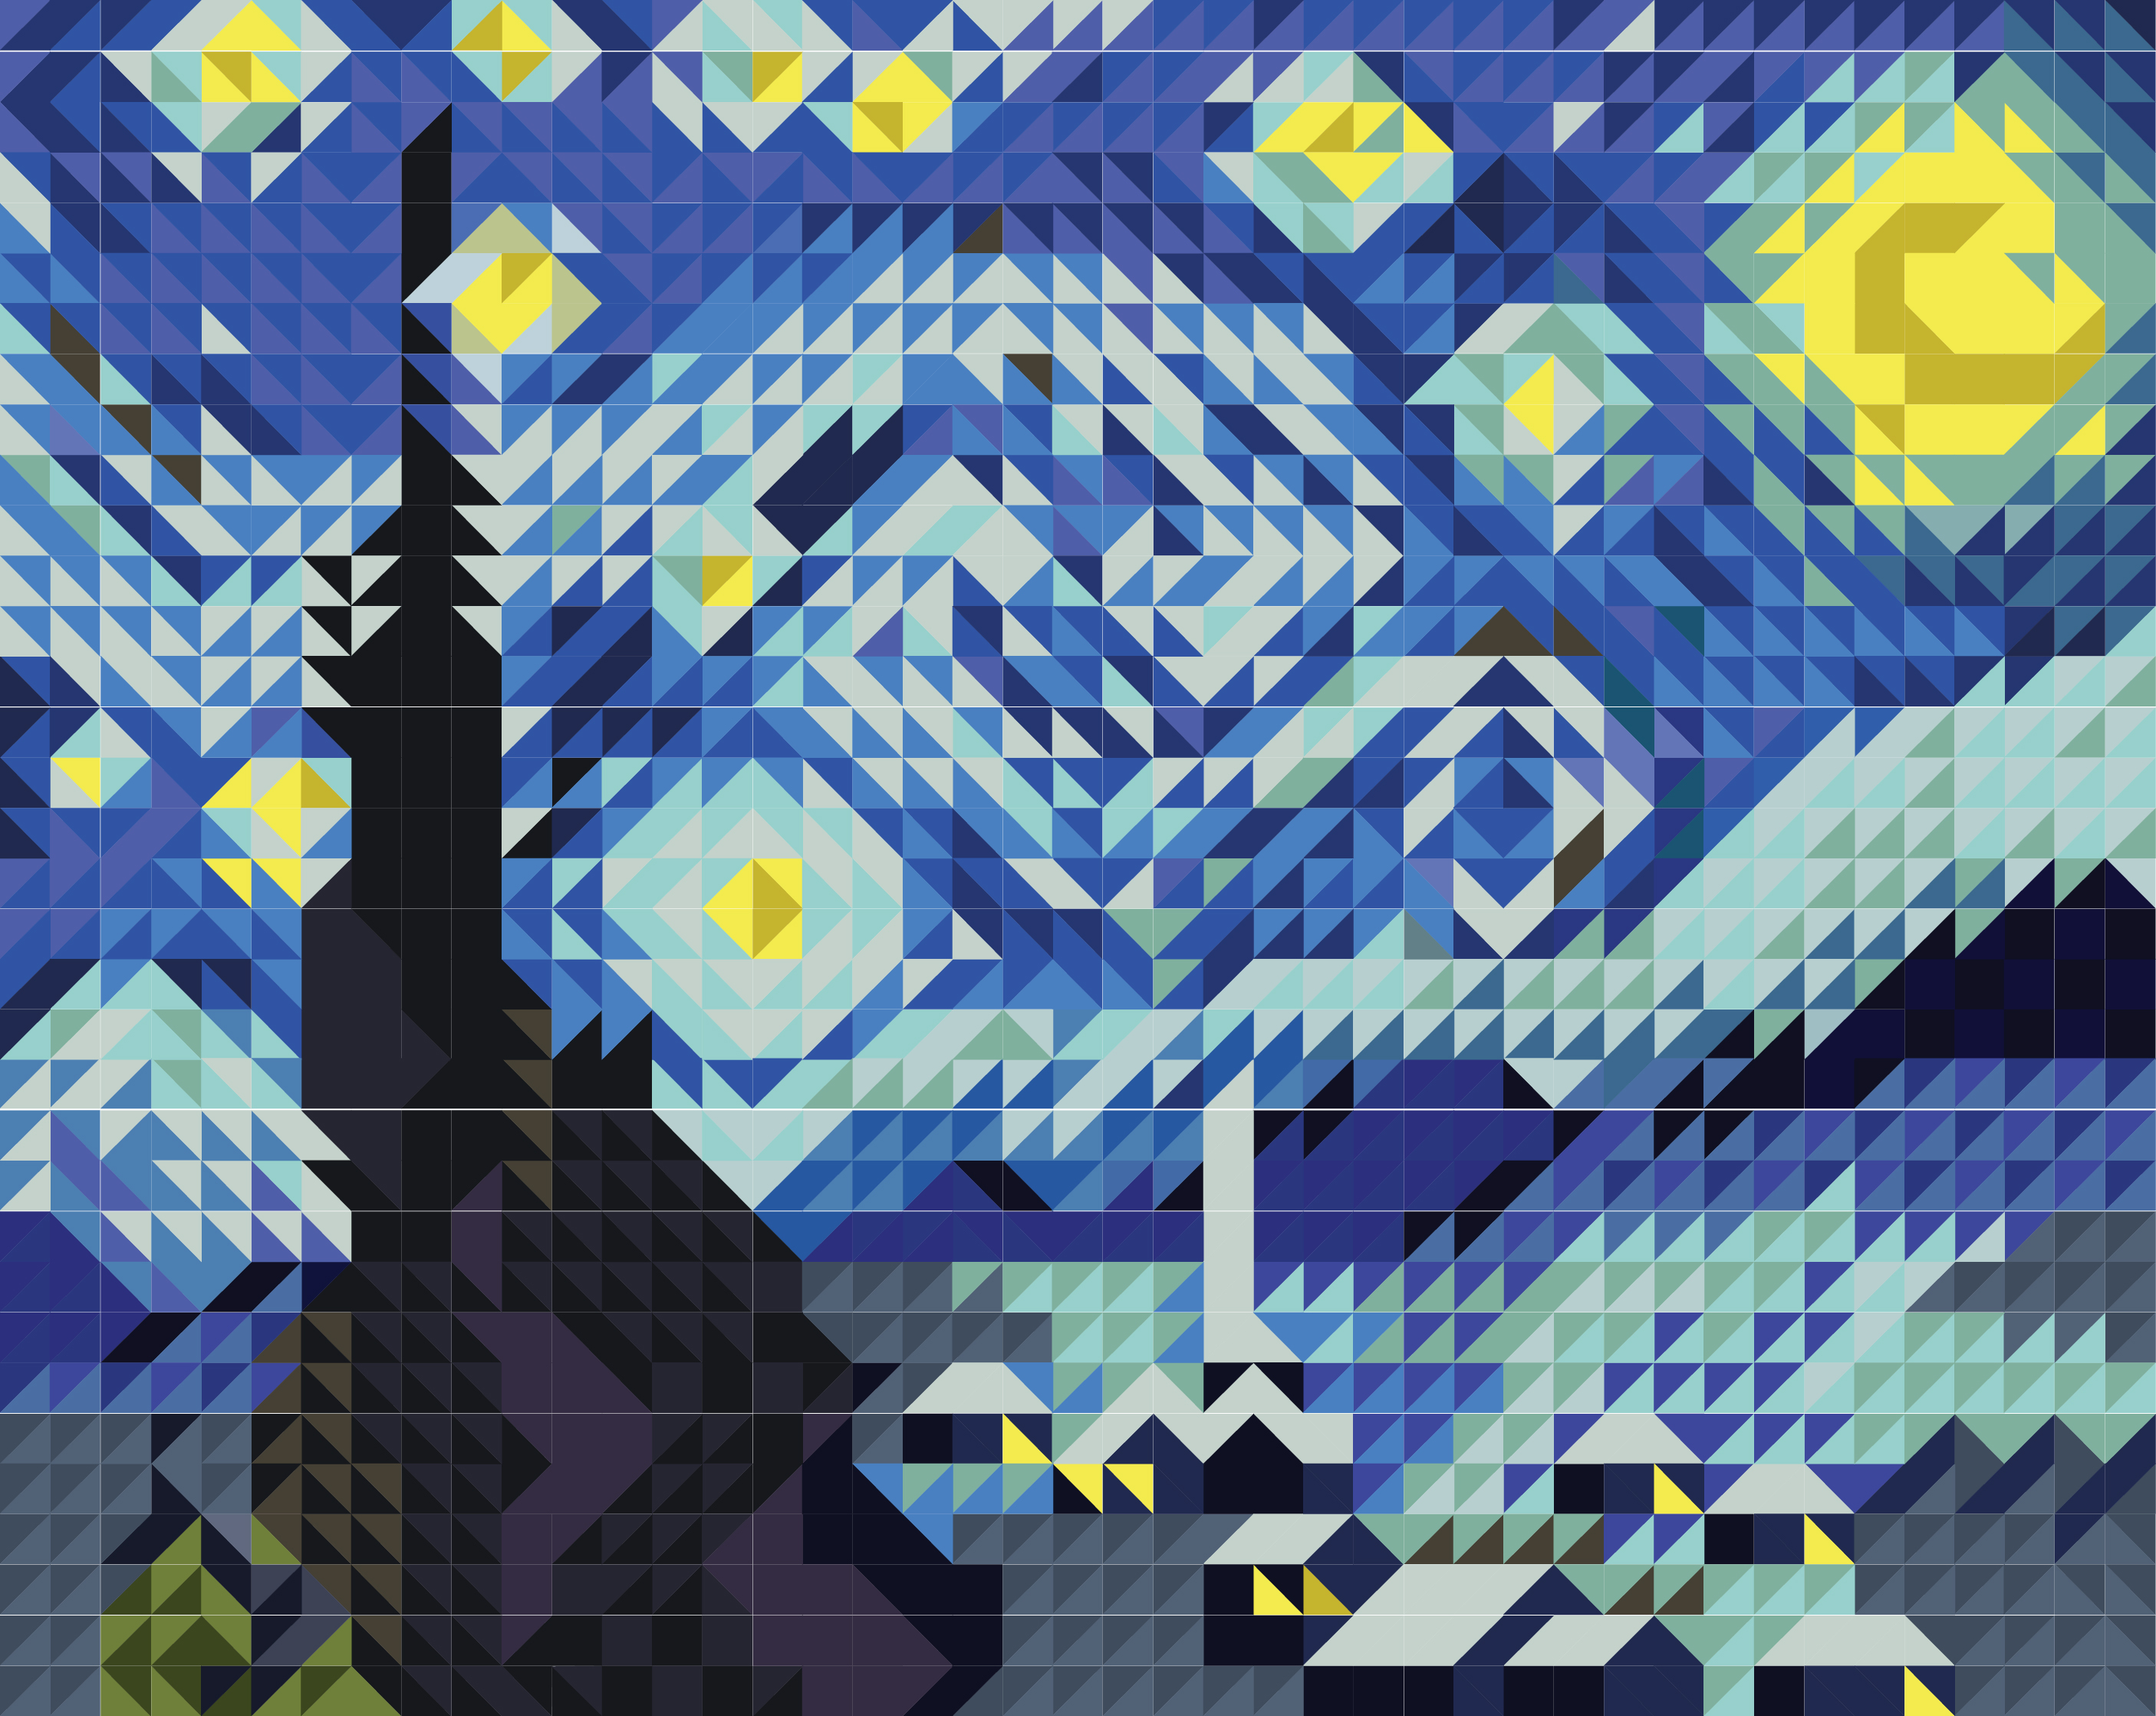 Quilt Pattern: Van Gogh's Starry Night